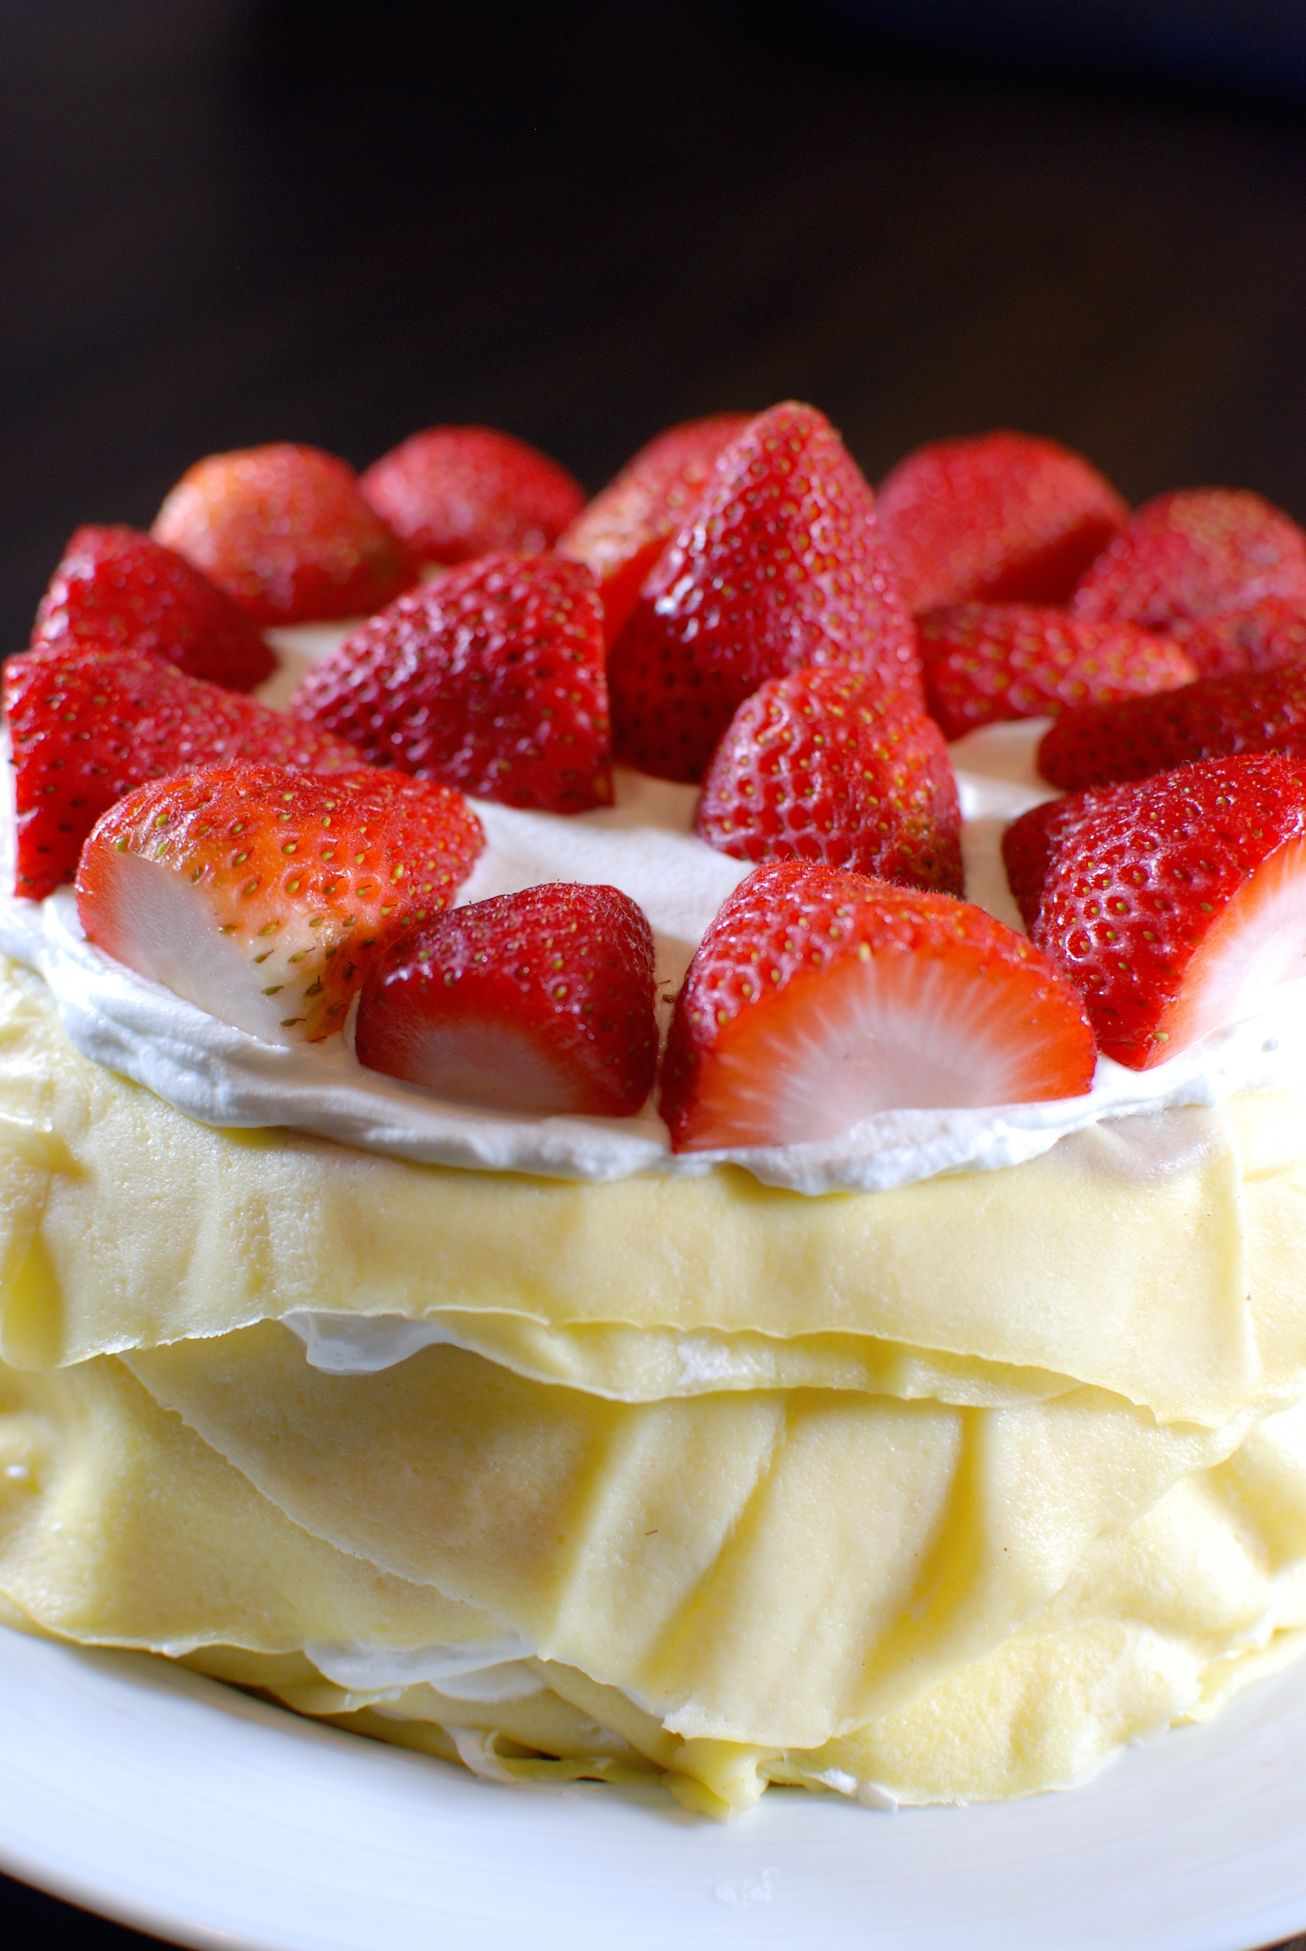 Cinder Grill Recipe Strawberry Crepe Cake Chef John Critchley Indoor Grill